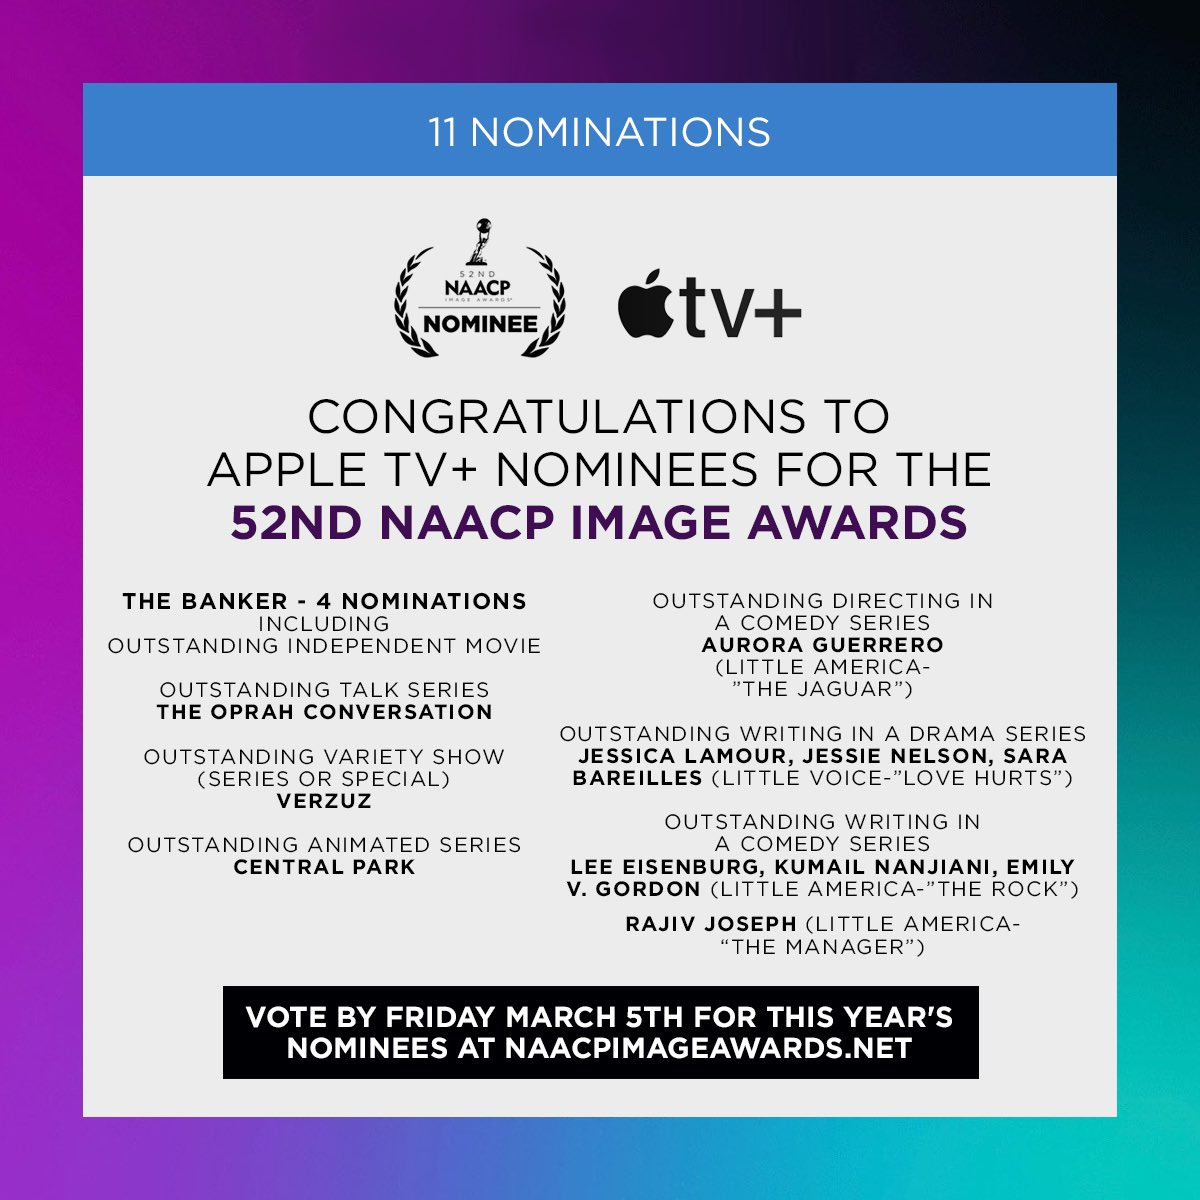 11 nominations for@Apple for this year's #NAACPImageAwards. You can view all the nominees and vote at. #TheBanker #Verzuz #CentralPark #TheOprahConversation   Today's the last day to vote